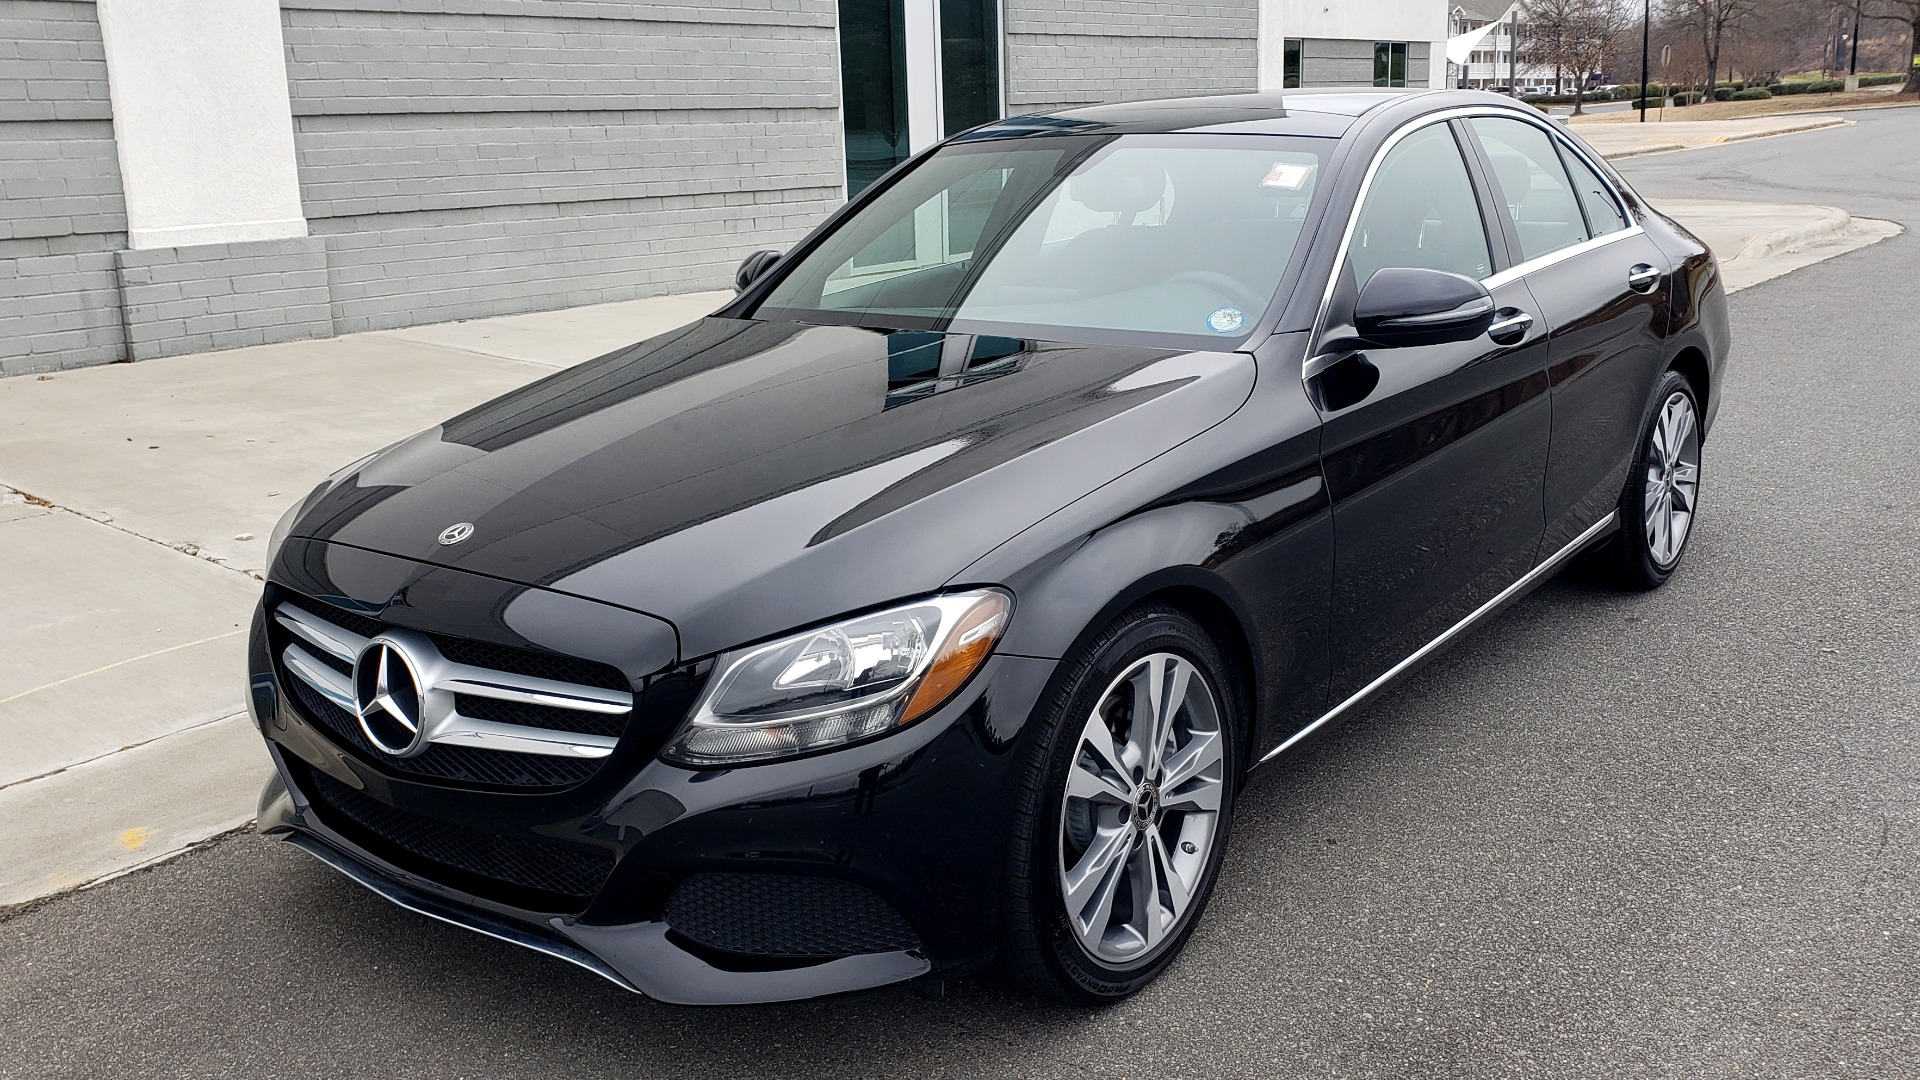 Used 2018 Mercedes-Benz C-CLASS C 300 PREMIUM / 2.0L TURBO / PANO-ROOF / KEYLESS-GO / REARVIEW for sale Sold at Formula Imports in Charlotte NC 28227 1